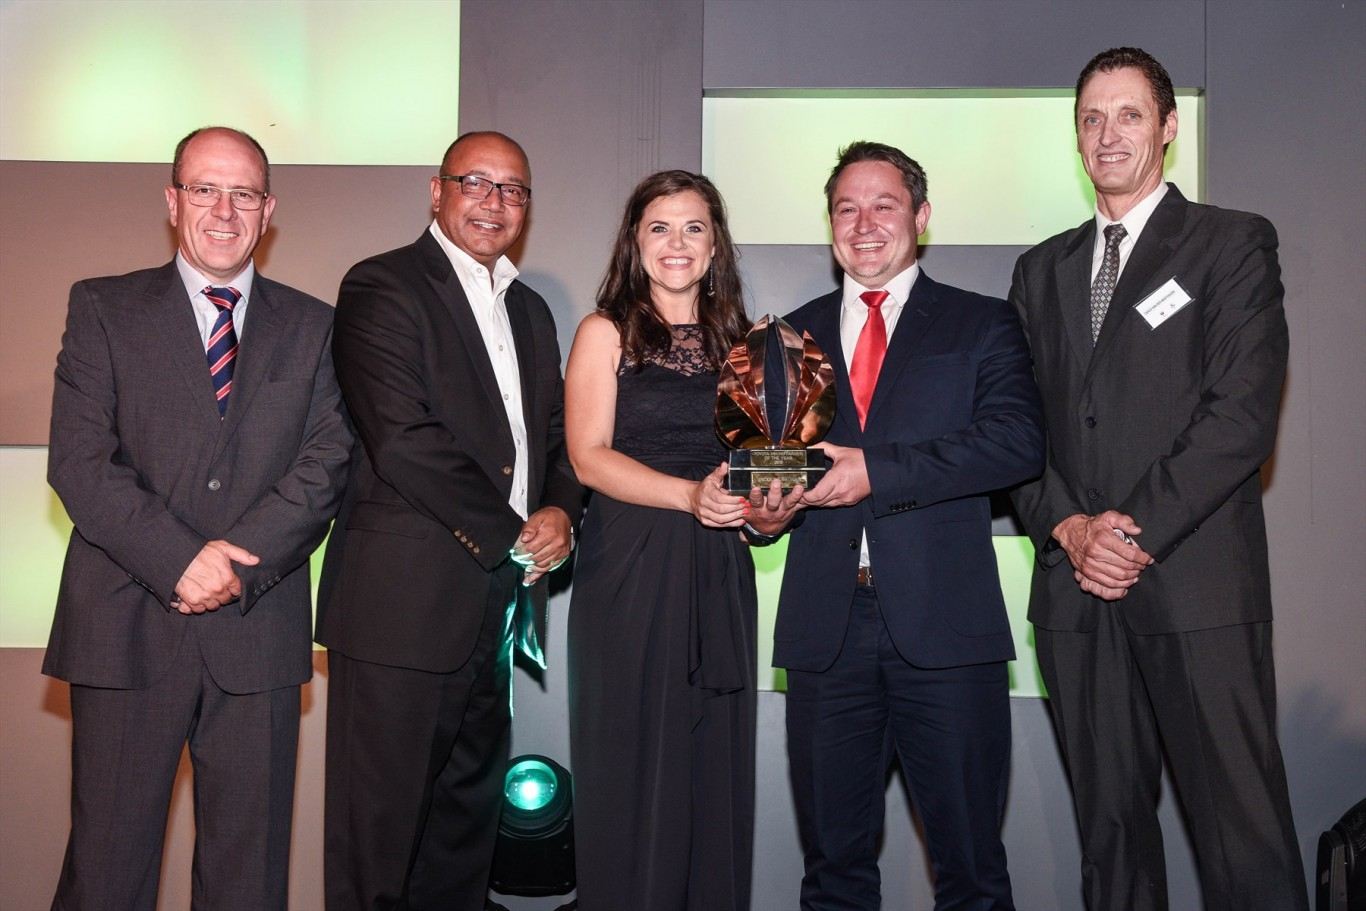 young-farmer-of-the-year-winner-jacques-beukes-and-his-wife-heleen-with-from-left-casper-kruger-toyota-sa-christo-van-der-rheede-deputy-exec-dir-of-agri-sa-and-prof-carlu-van-der-westhuizen_1800x1800